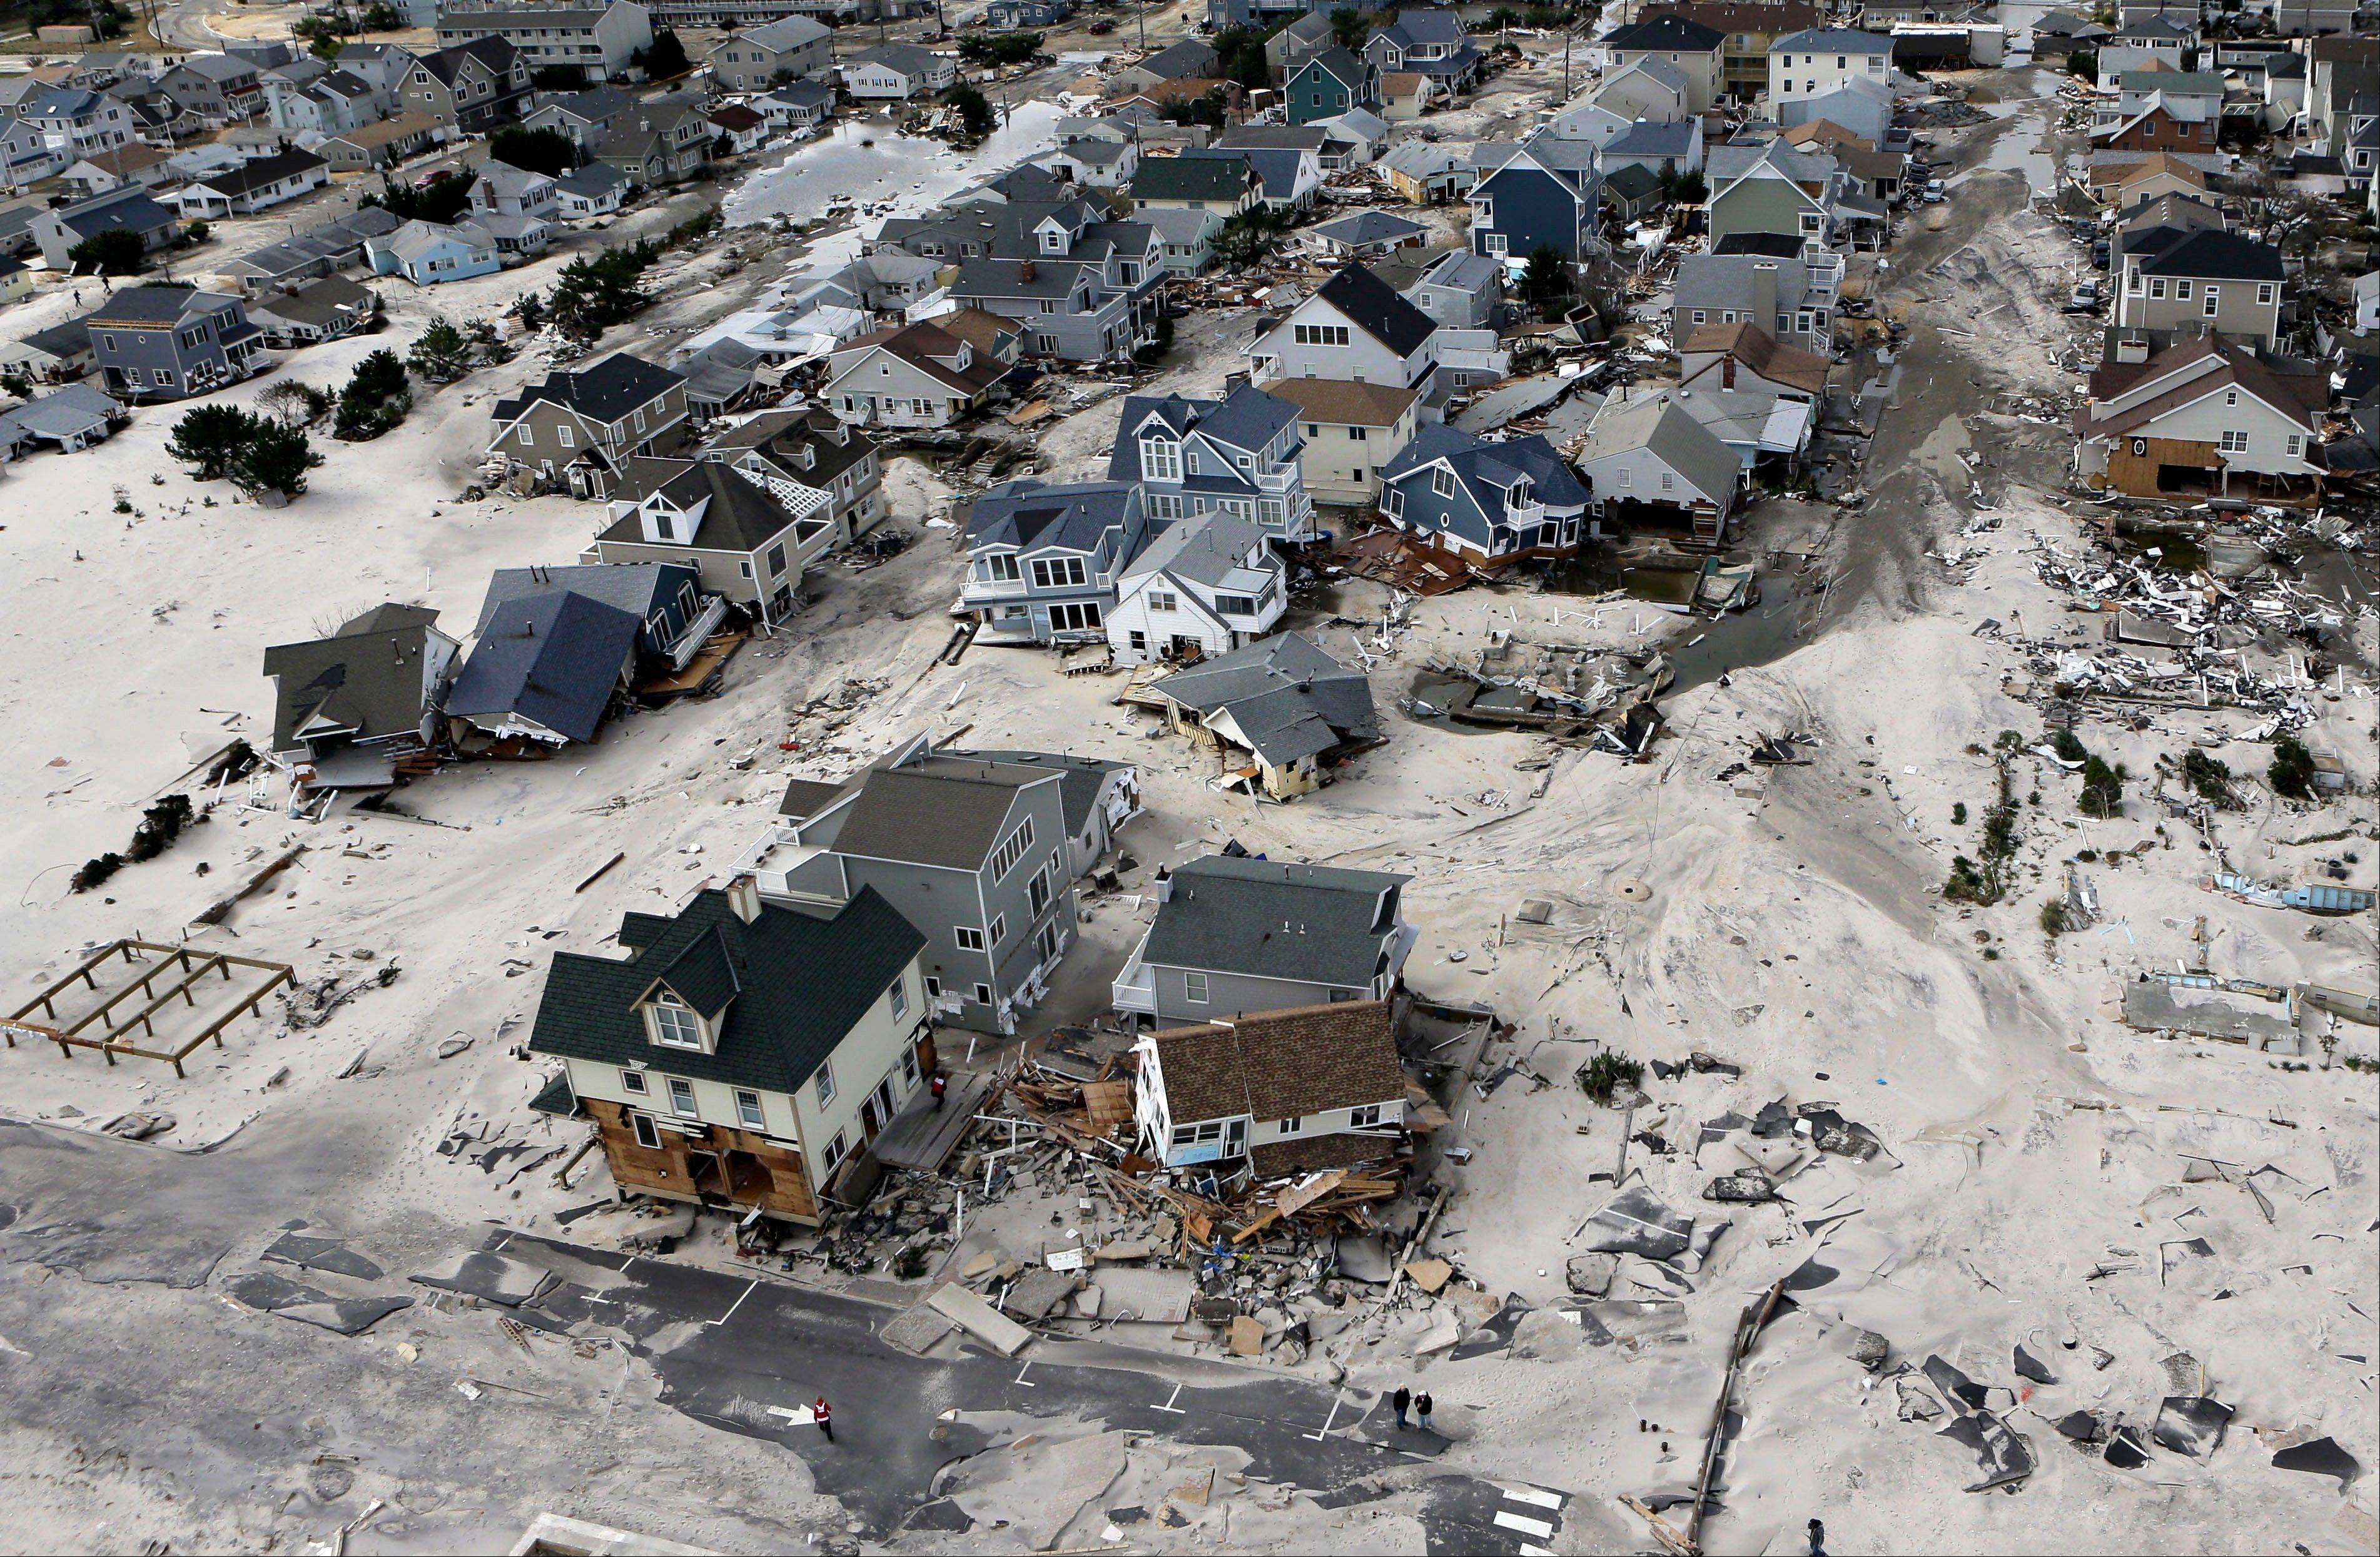 Destroyed and damaged homes were left in the wake of Superstorm Sandy in Ortley Beach, N.J., in this photo from Oct. 31, 2012.